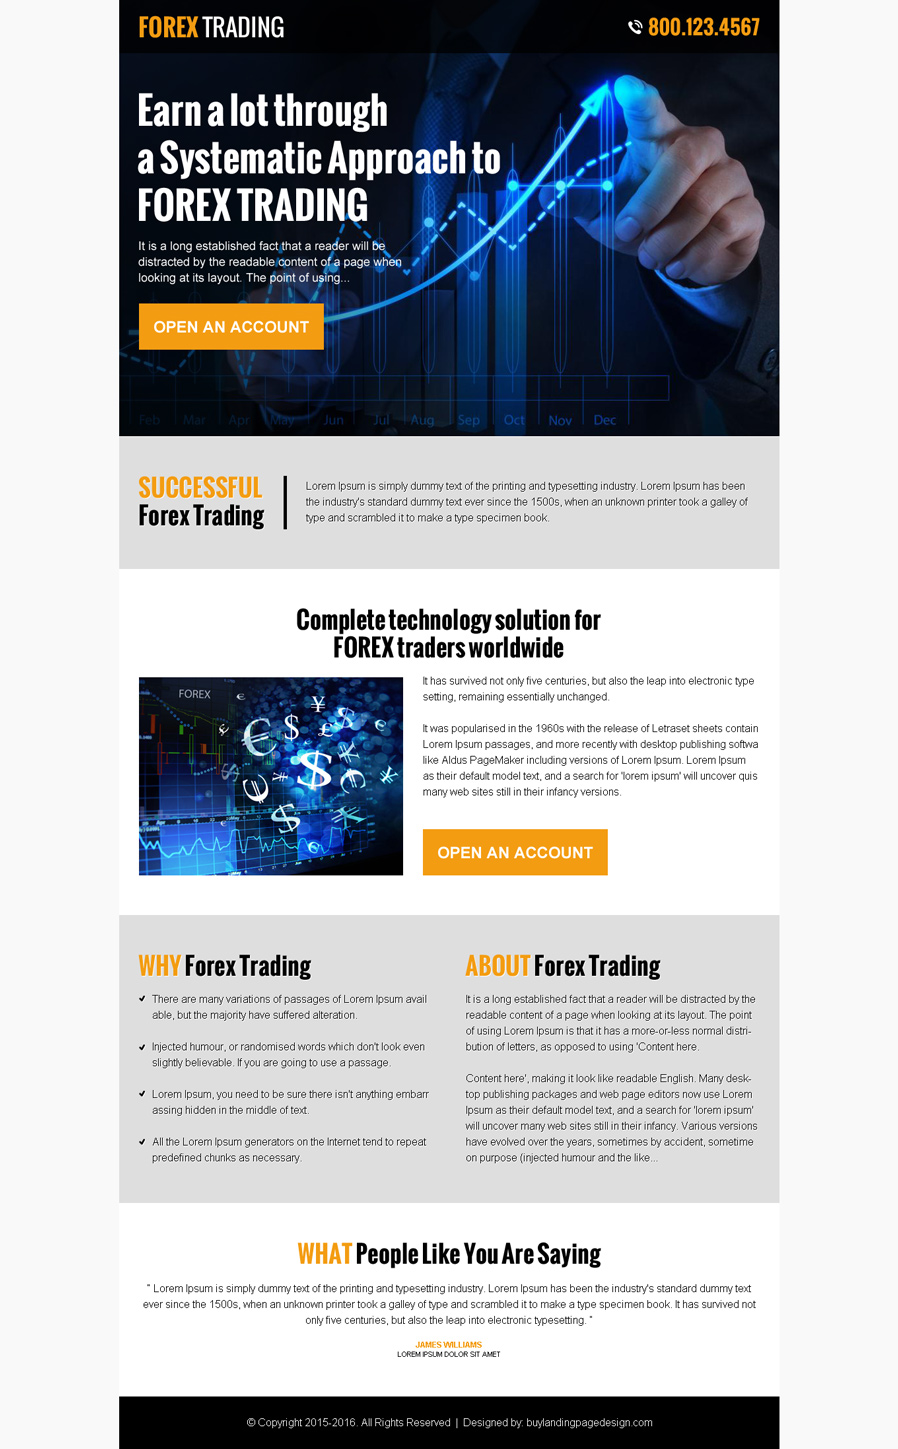 forex-trading-pay-per-click-landing-page-design-template-006